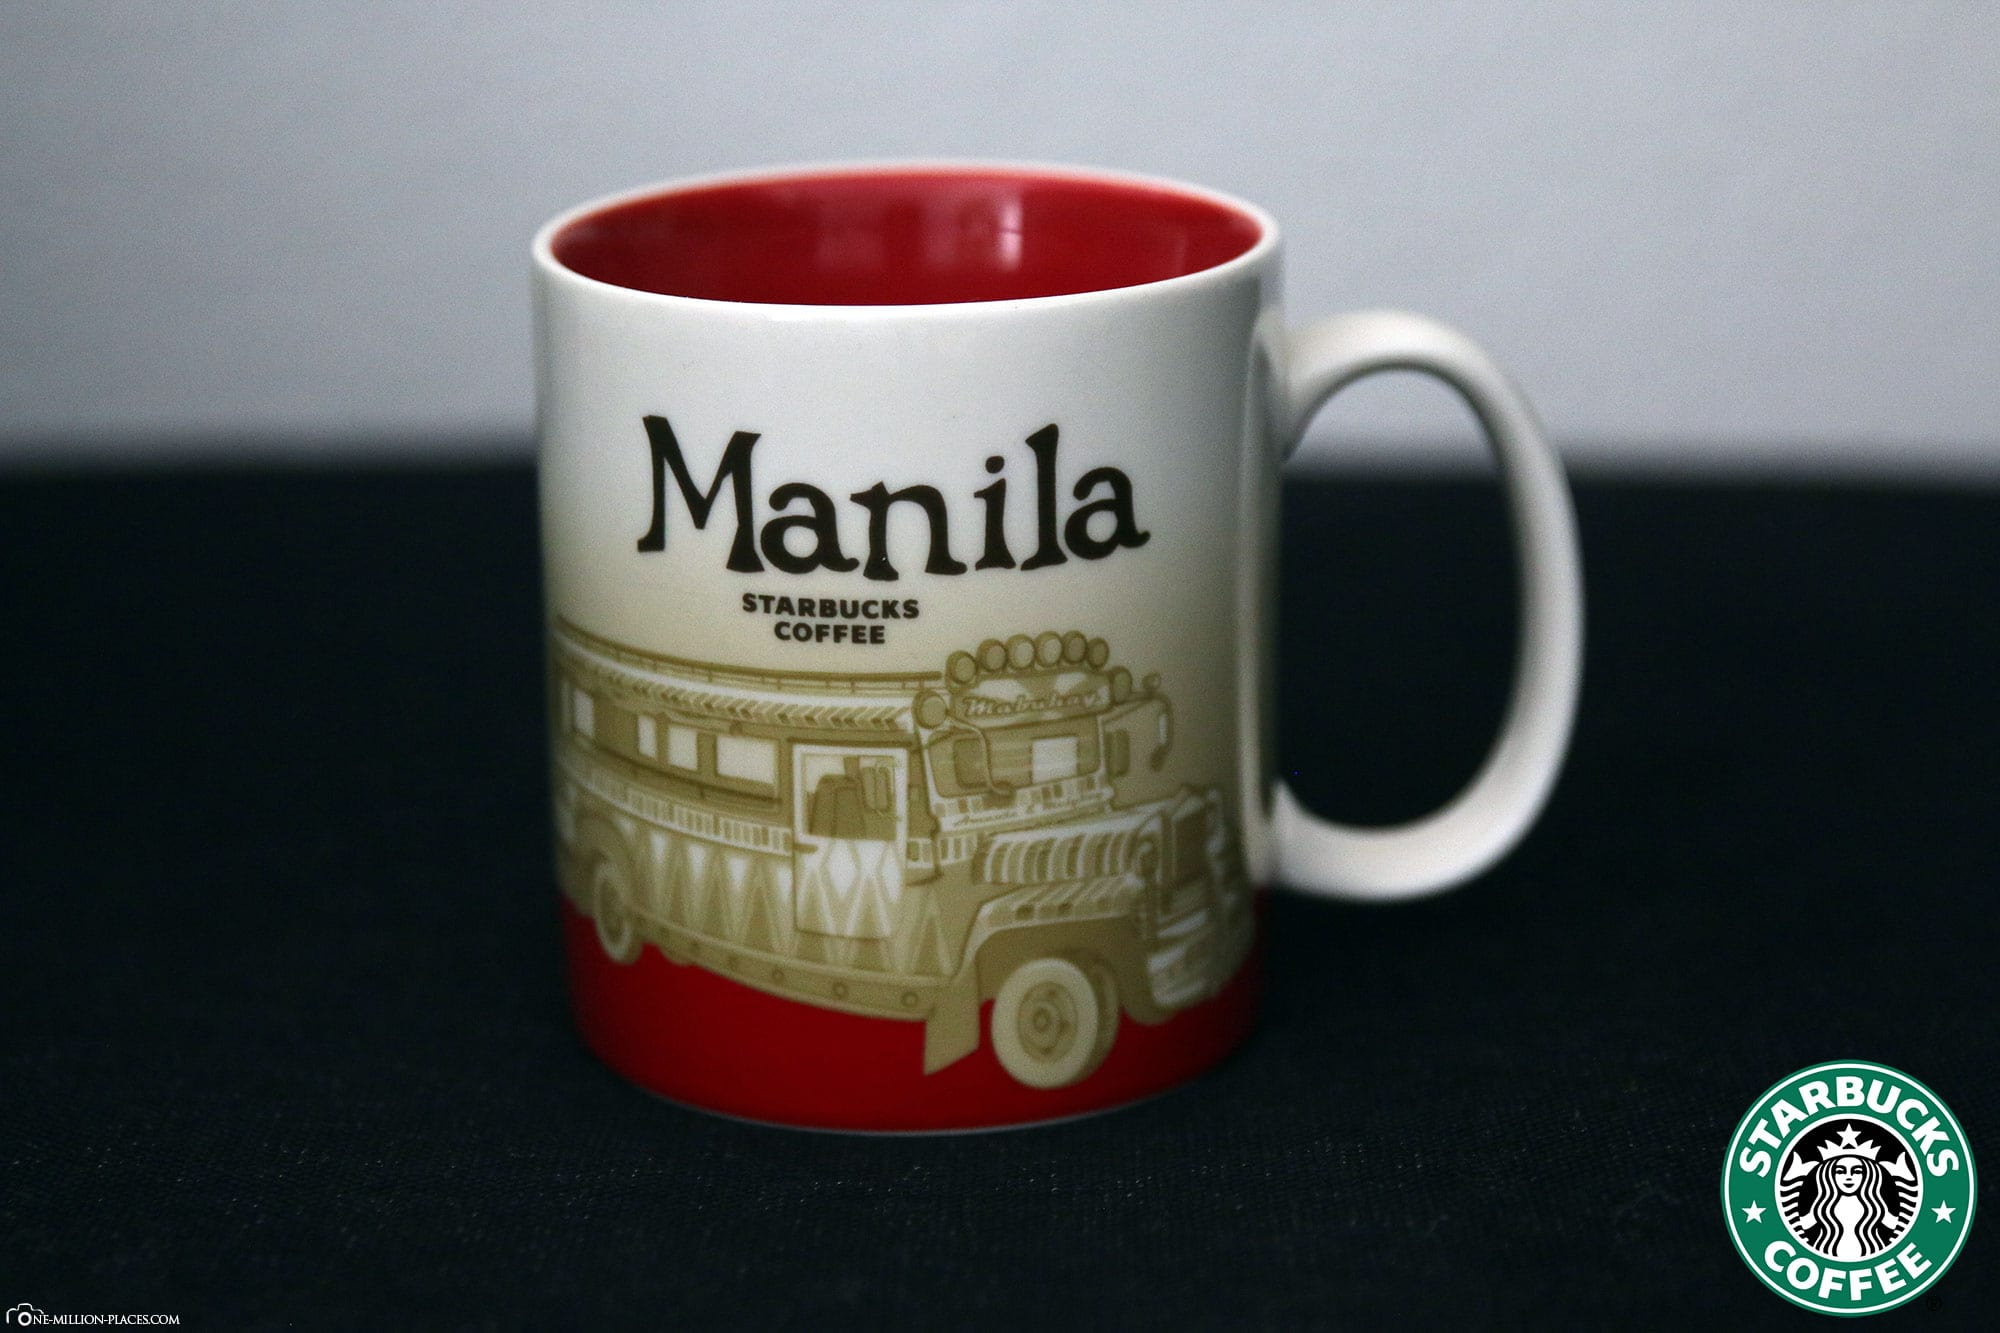 Manila, Starbucks Cup, Global Icon Series, City Mugs, Collection, Philippines, Travelreport